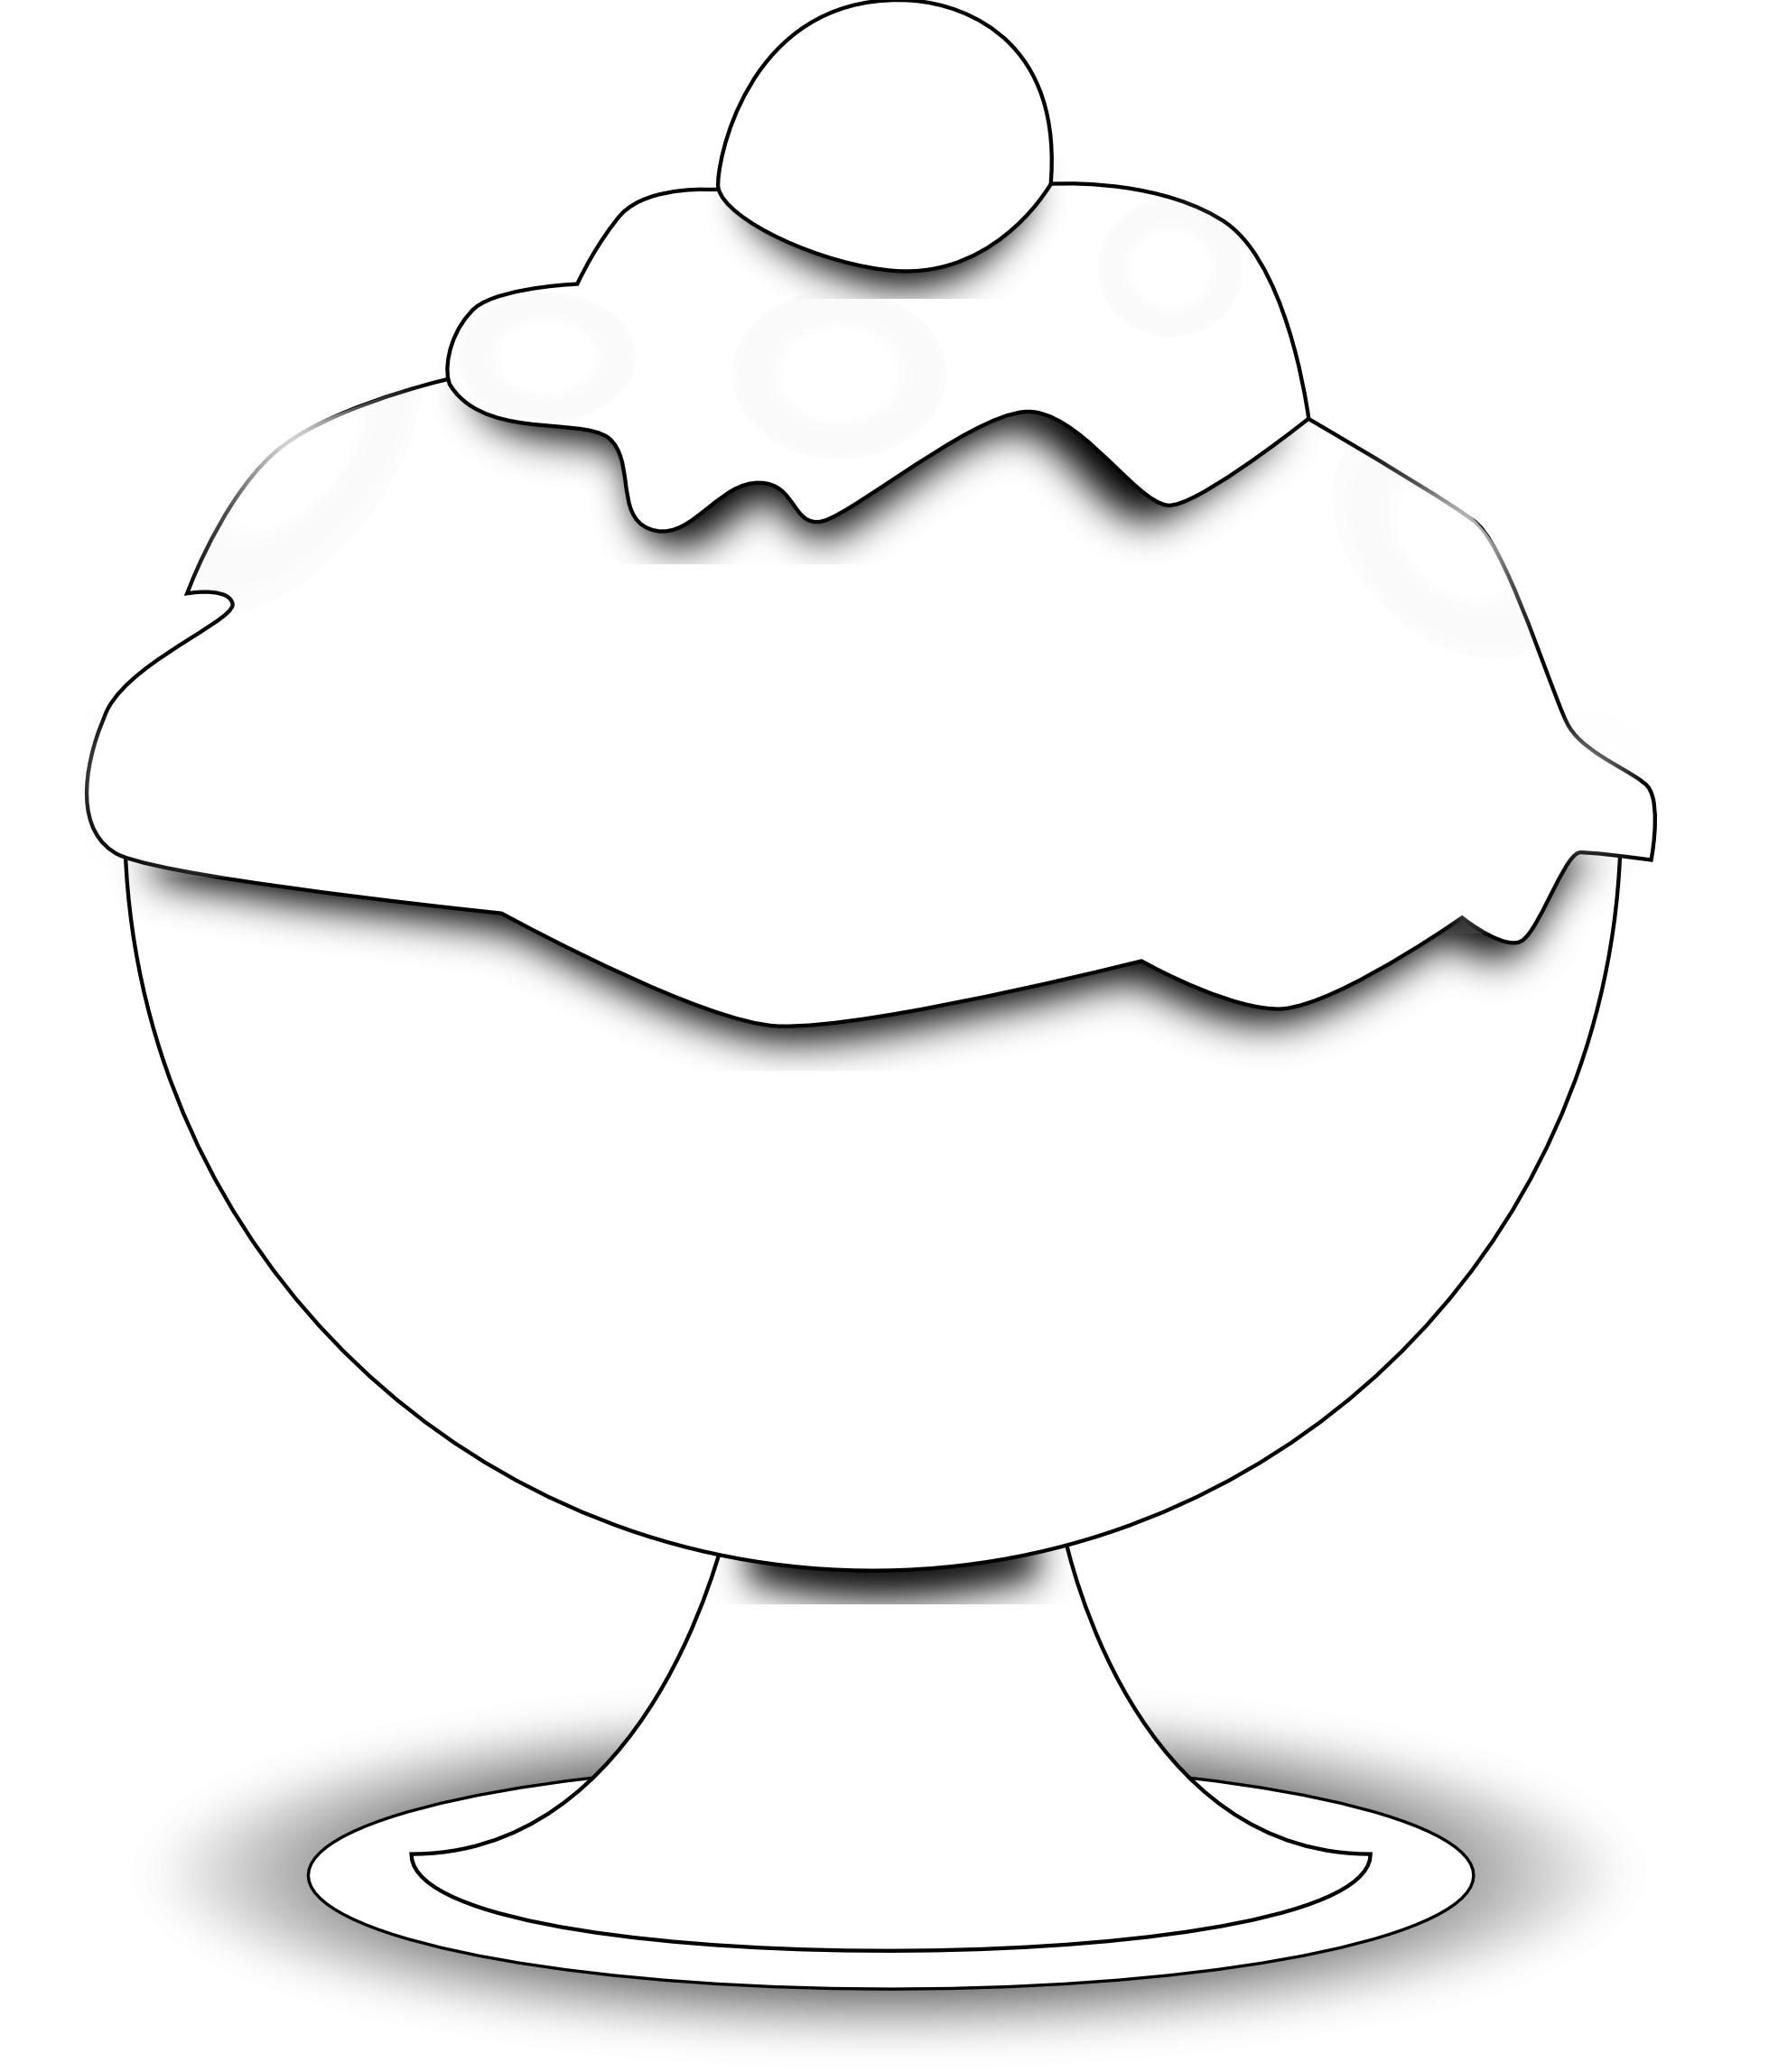 Clip Art Black And White Ice Cream Scoop